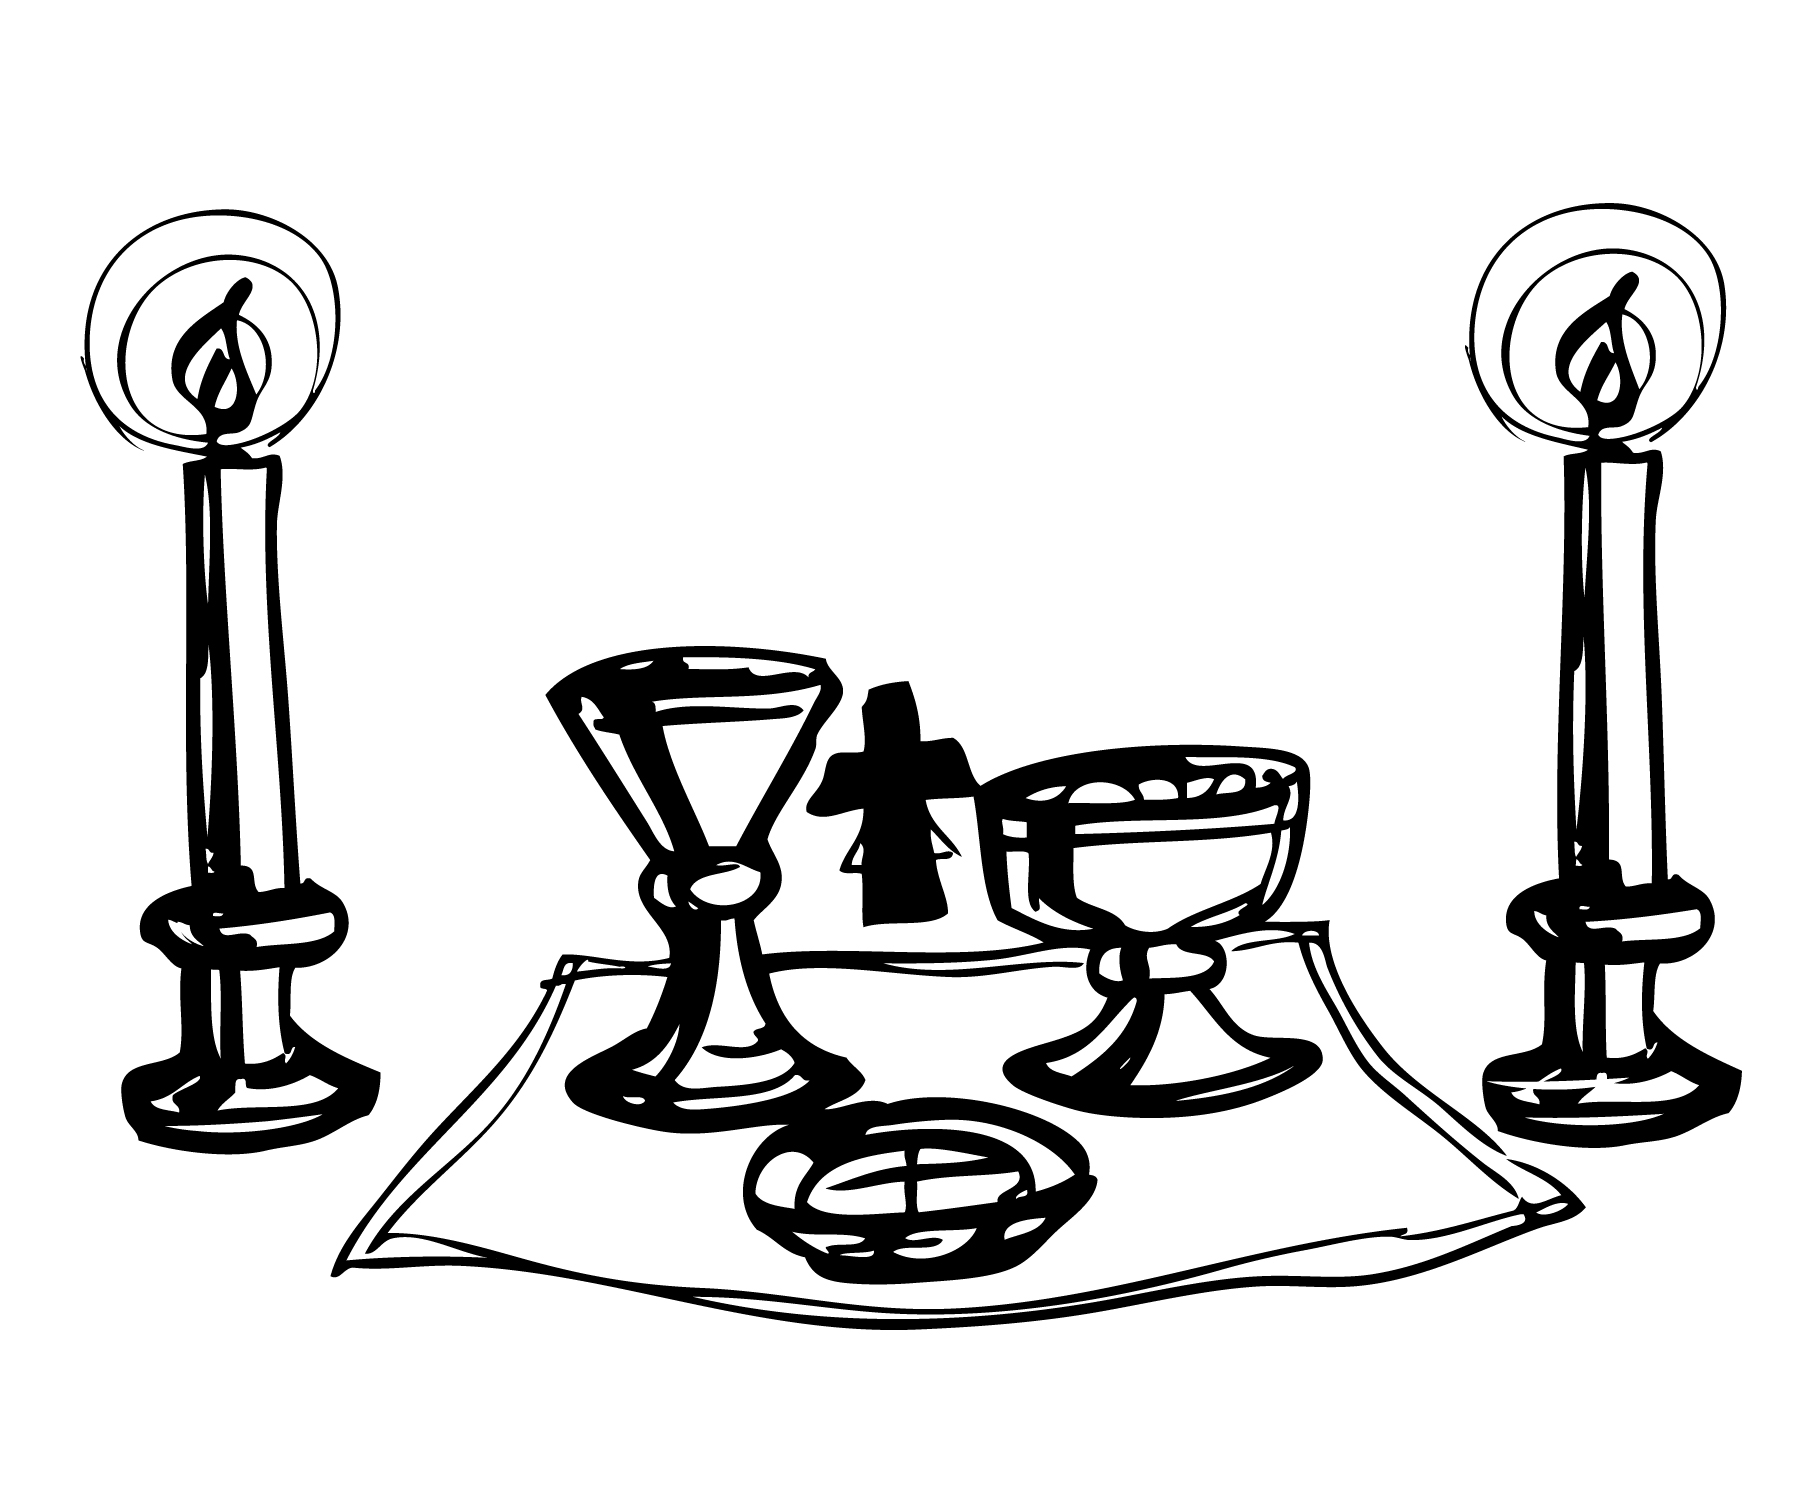 Candle clipart black and white altar dia de los muertis transparent Collection of Altar clipart | Free download best Altar clipart on ... transparent